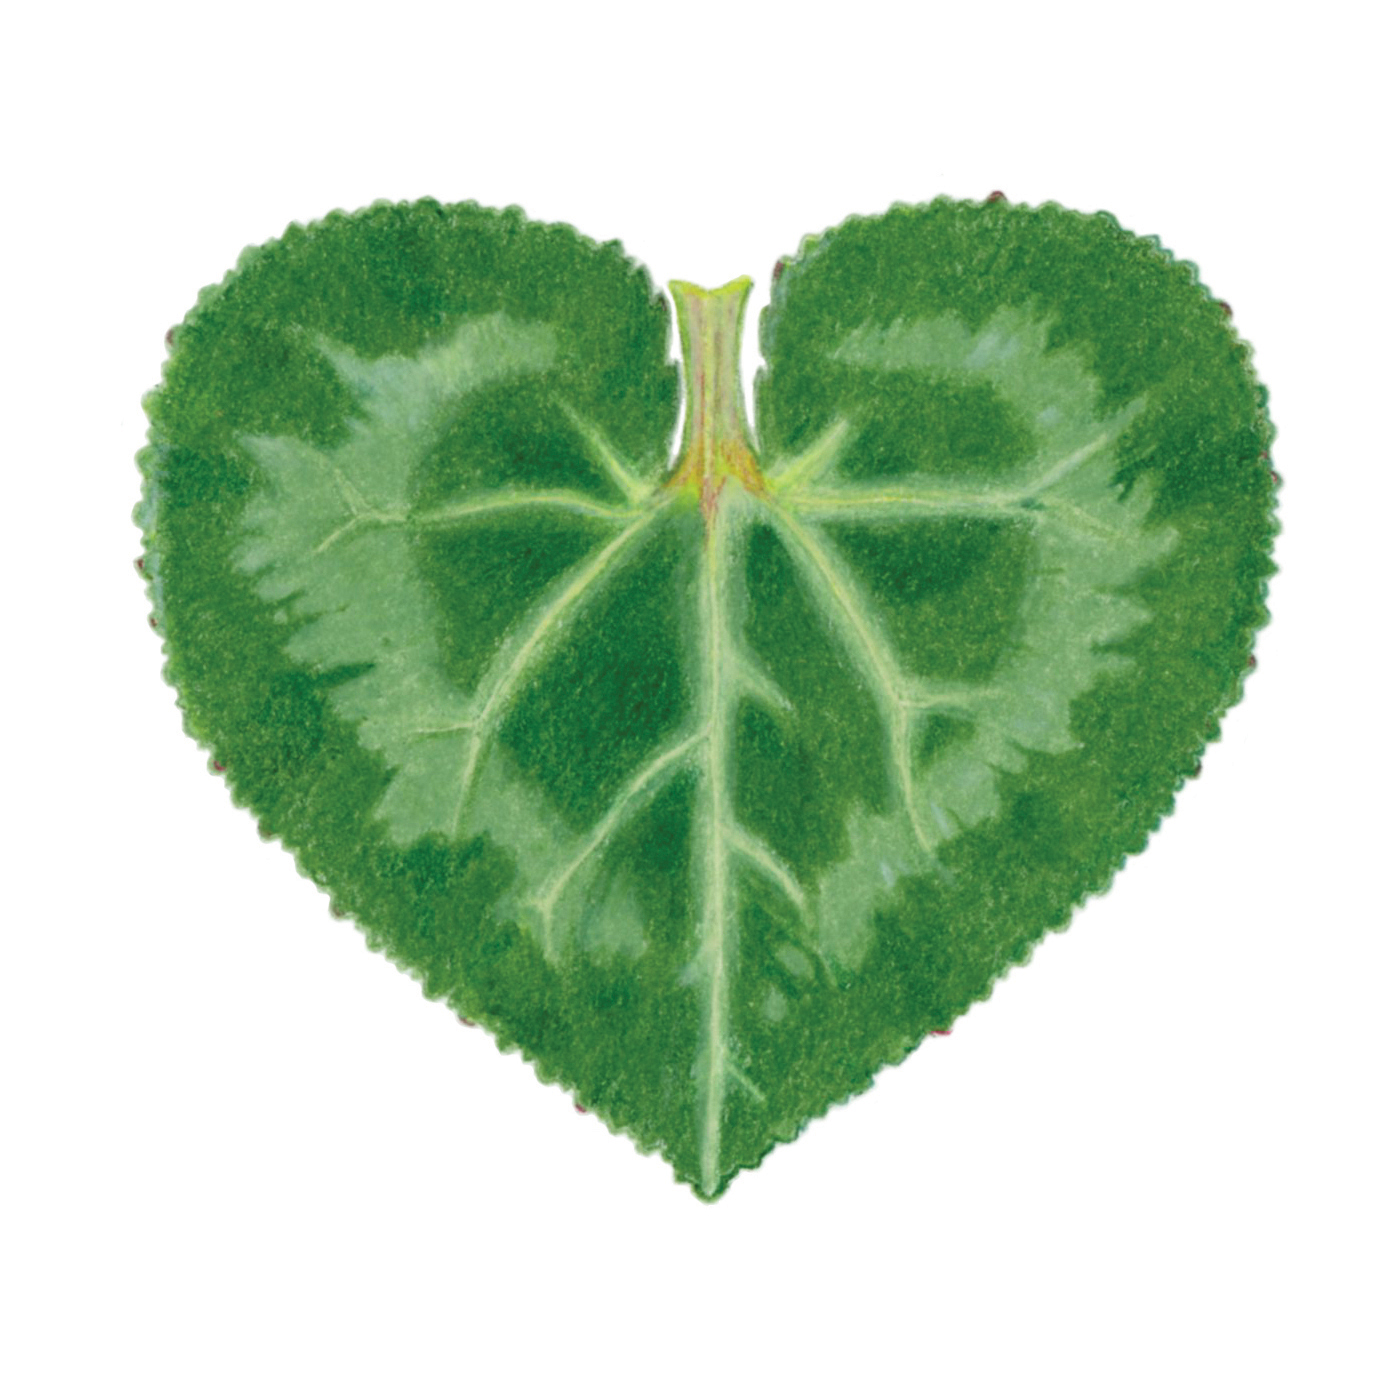 Heart_CyclamenLeaf001_crop.jpg